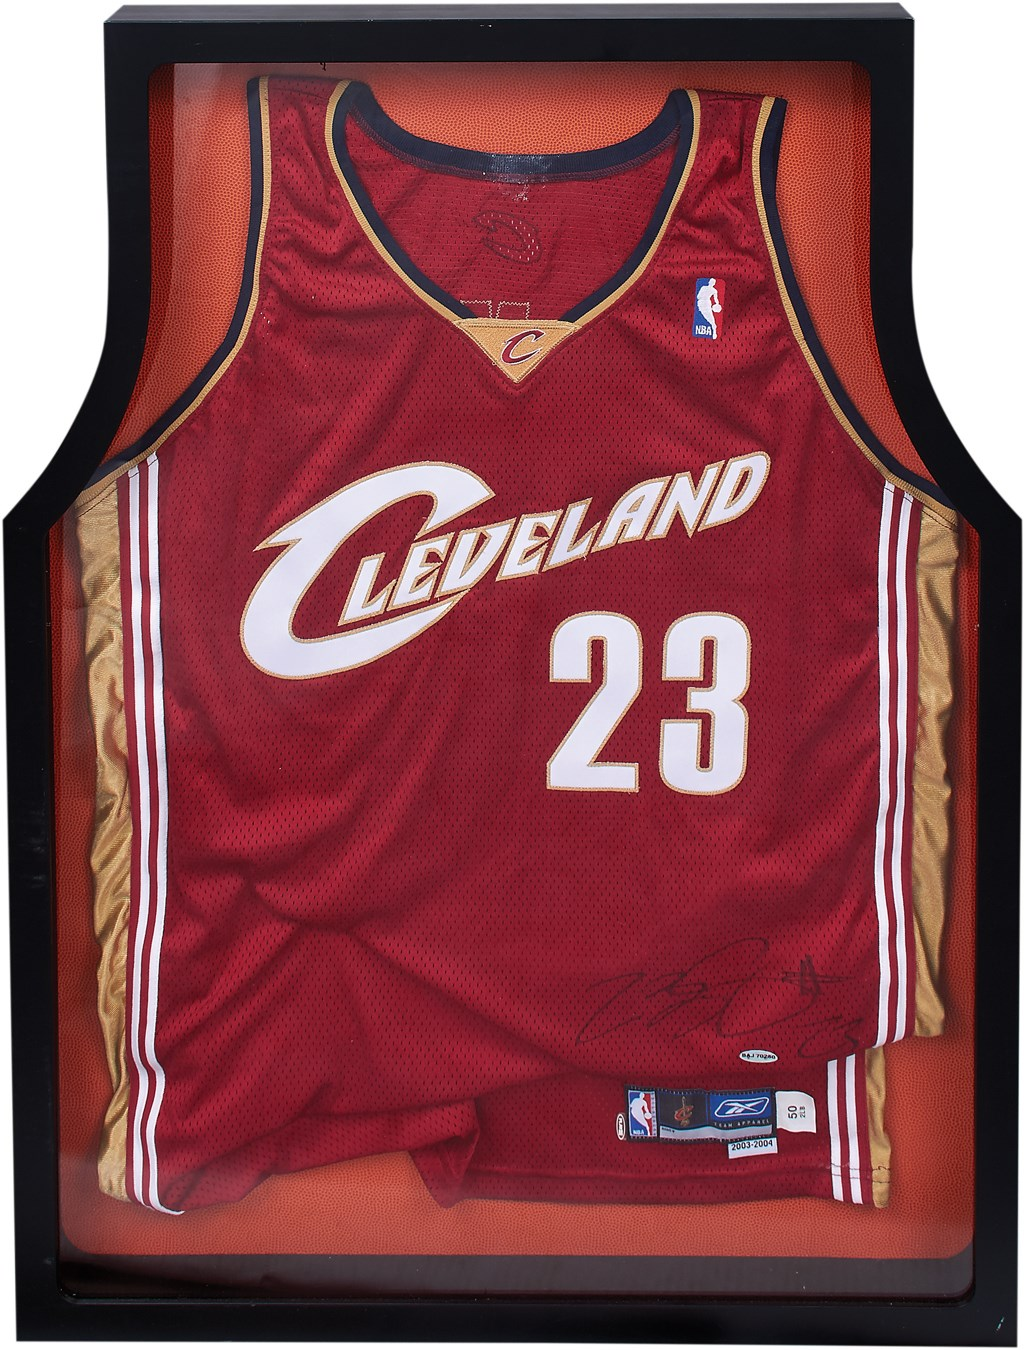 2a70c730413 2003-04 LeBron James Signed Game Issued Rookie Jersey (UDA)